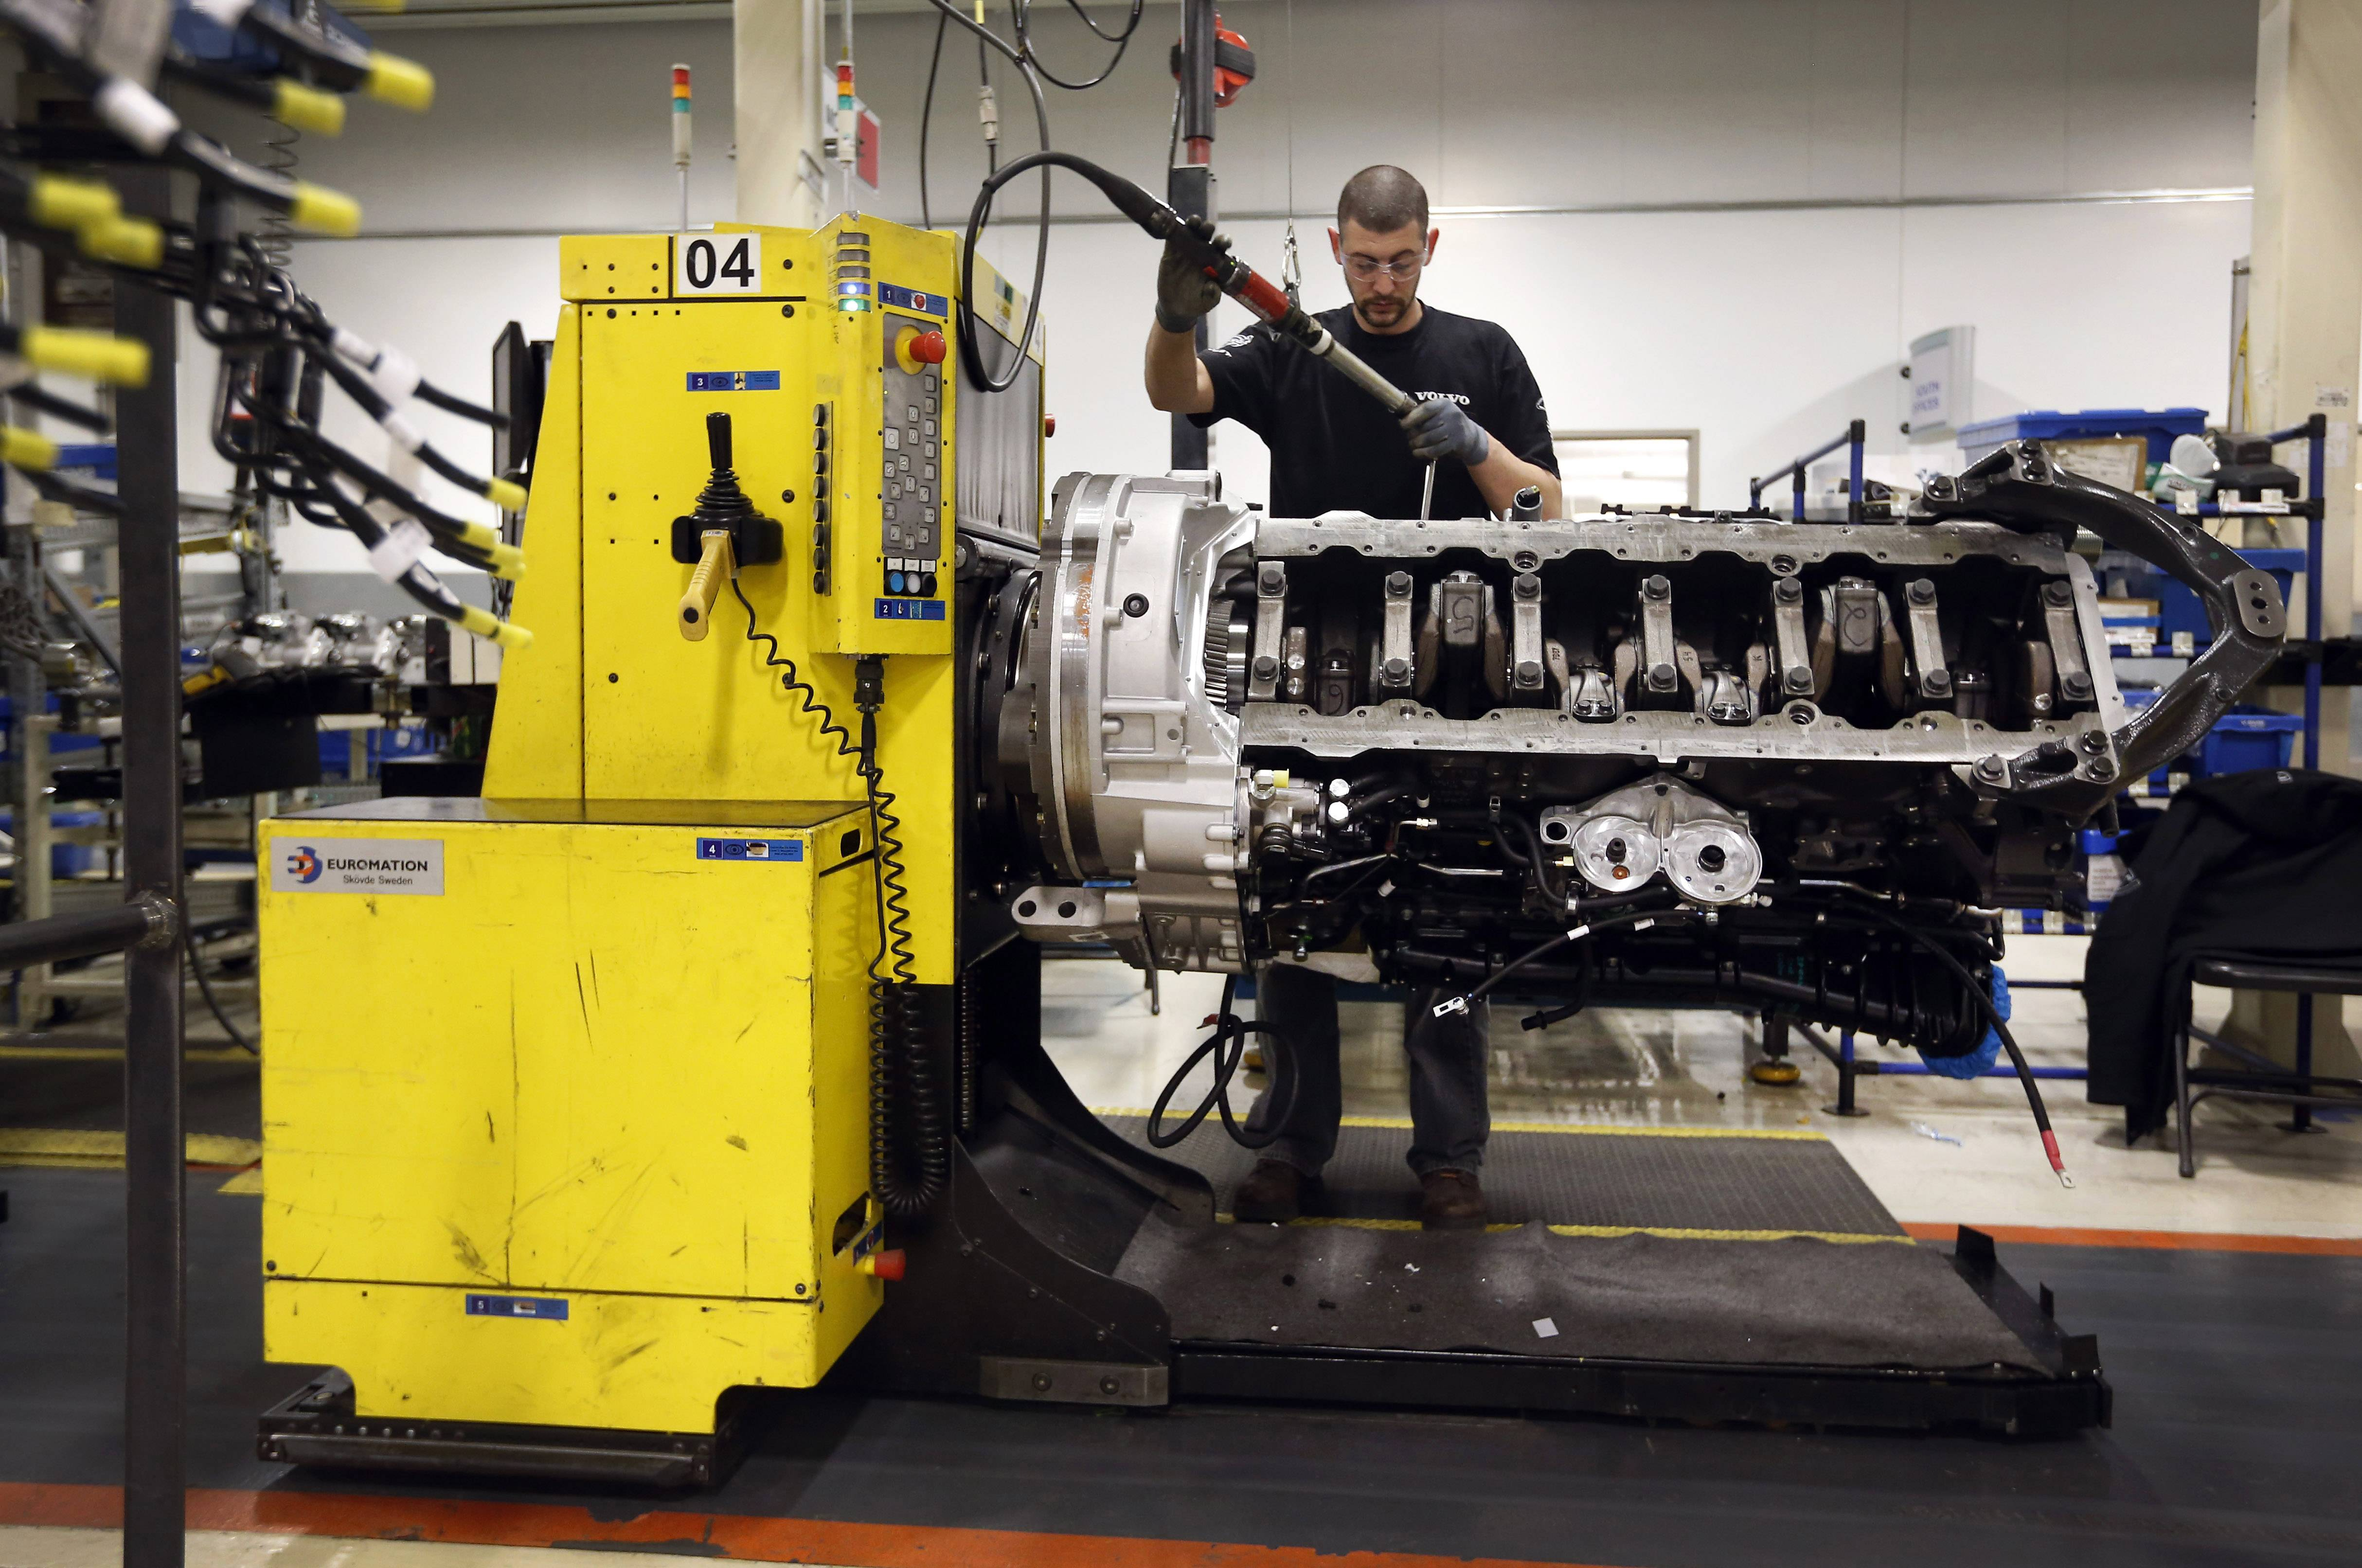 Jon Wyand works on a truck engine assembly line at Volvo Trucks' powertrain manufacturing facility in Hagerstown, Md. The economy likely stumbled at the start of this year, but there's probably little reason to worry: Economists foresee a solid rebound with the end of a harsh winter.